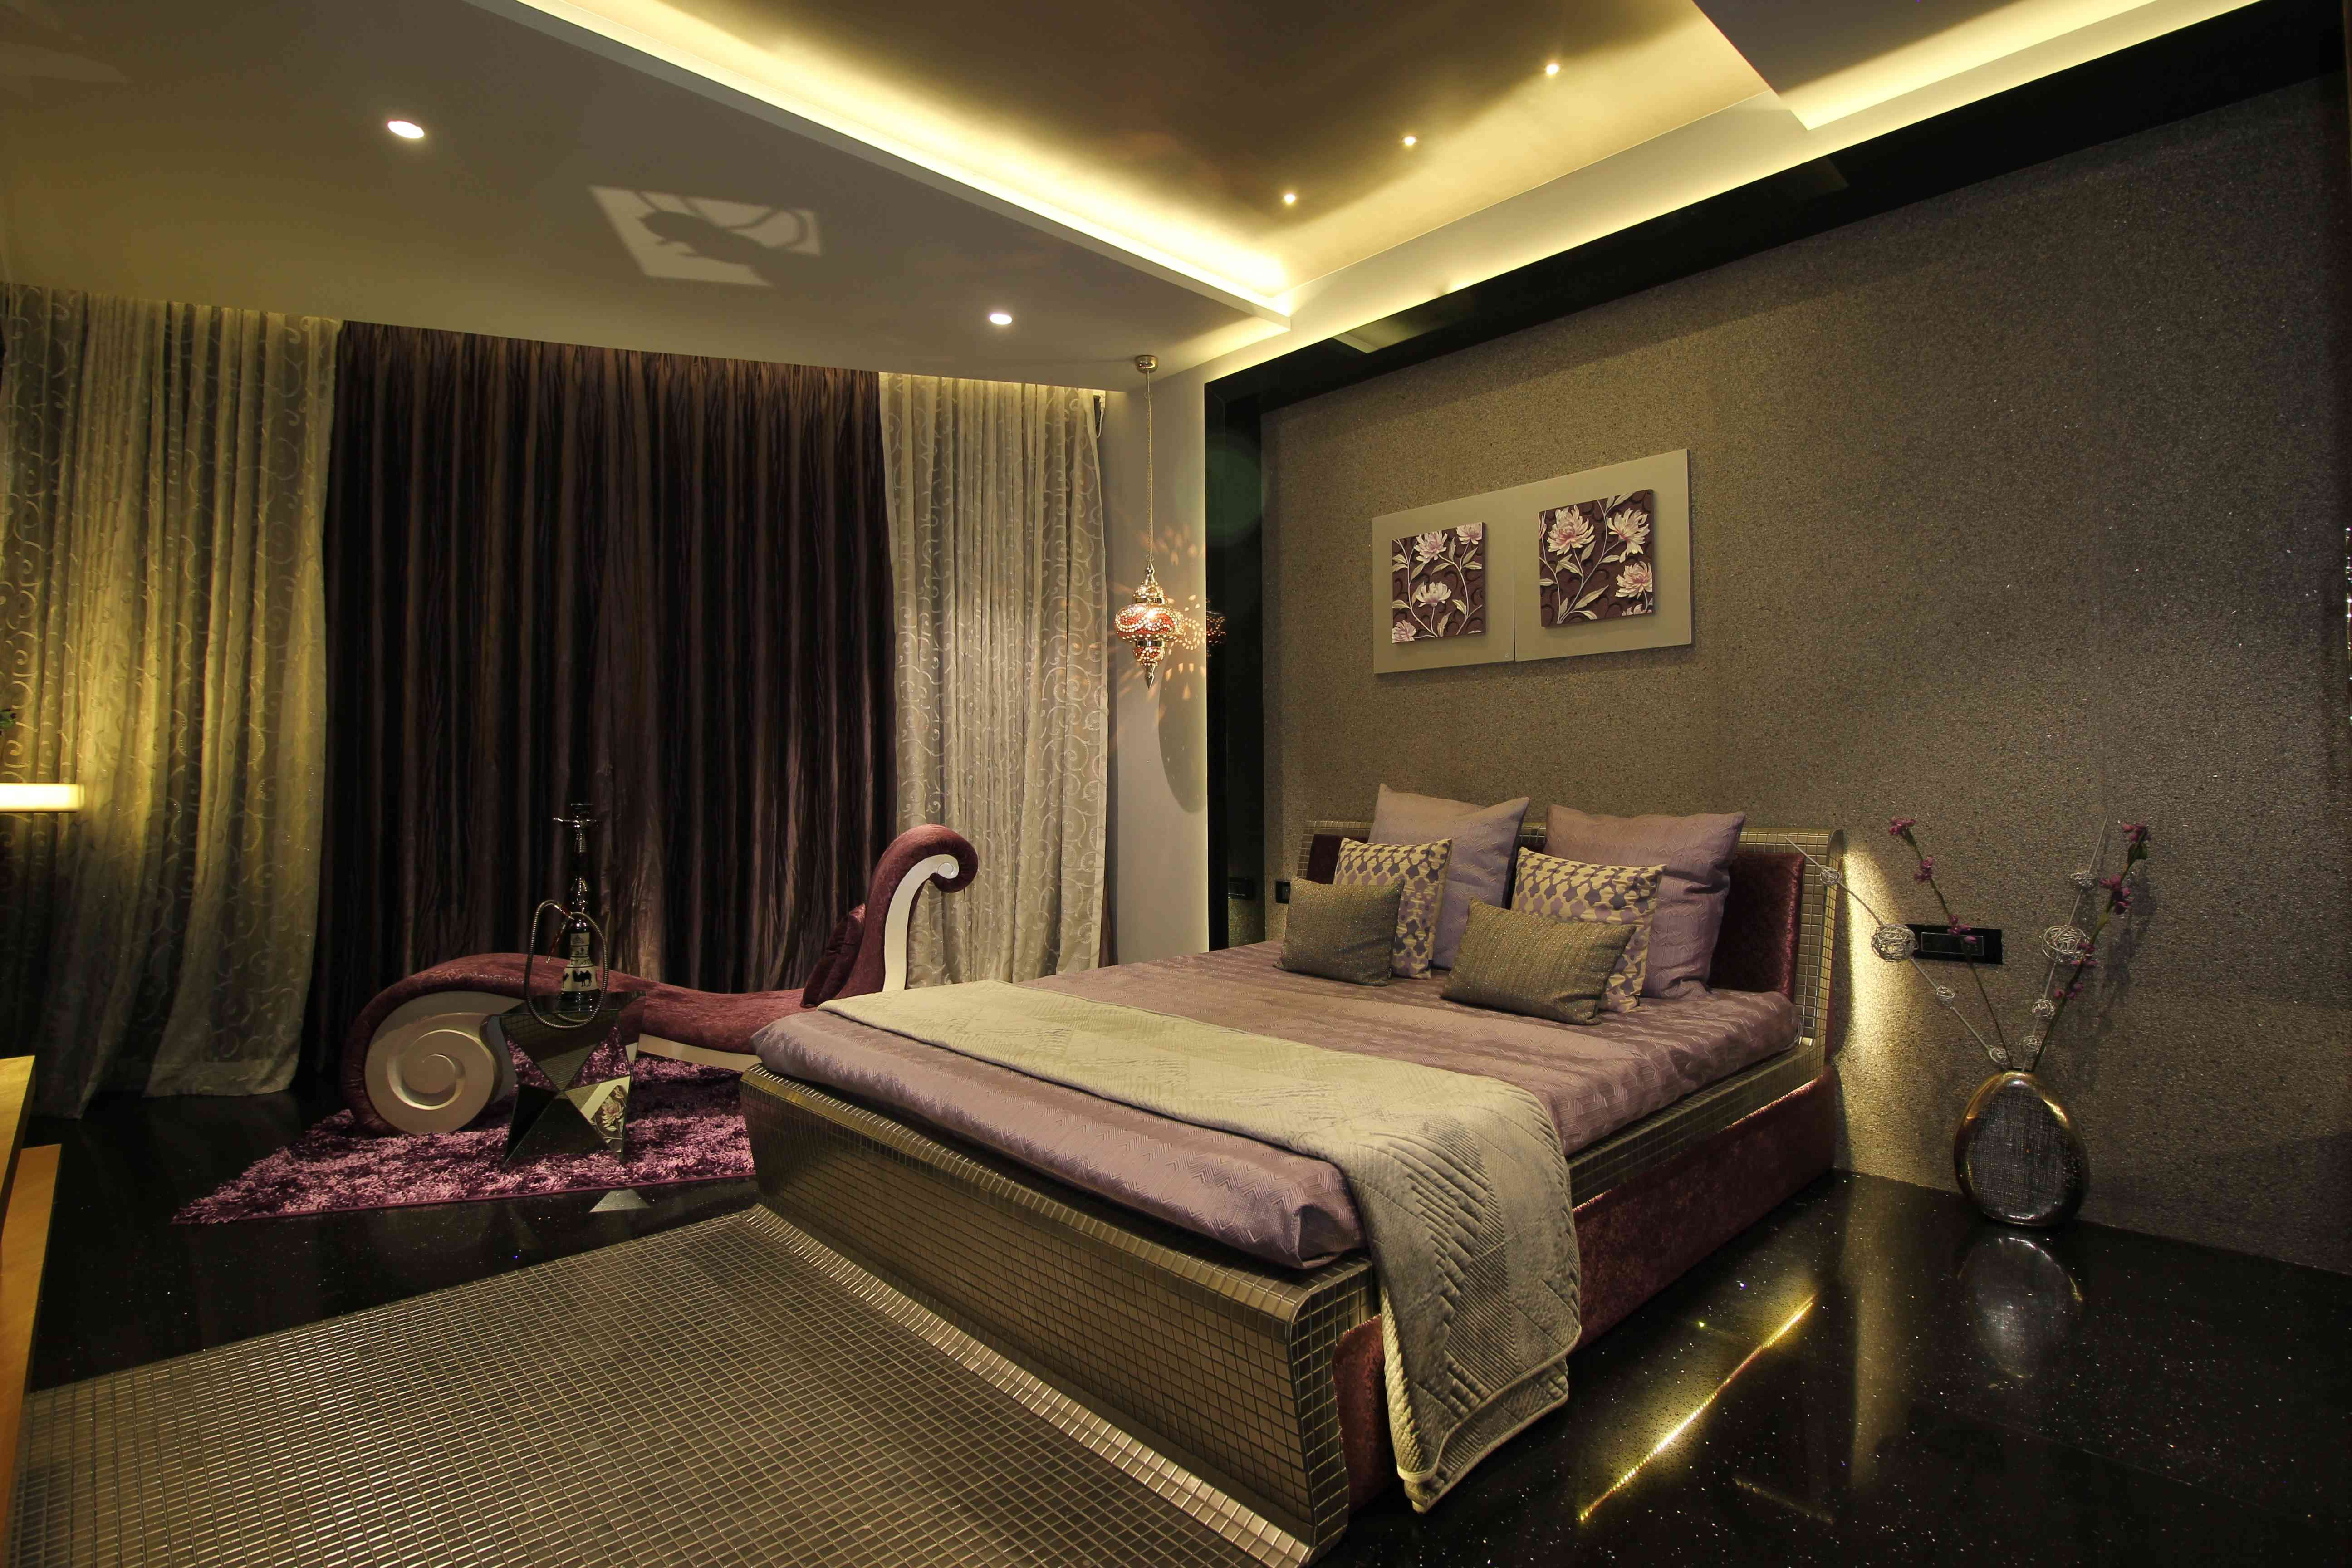 Loft bed ideas for low ceiling  Design by Monika Bhatt  Bedroom Designs  Pinterest  Shell and